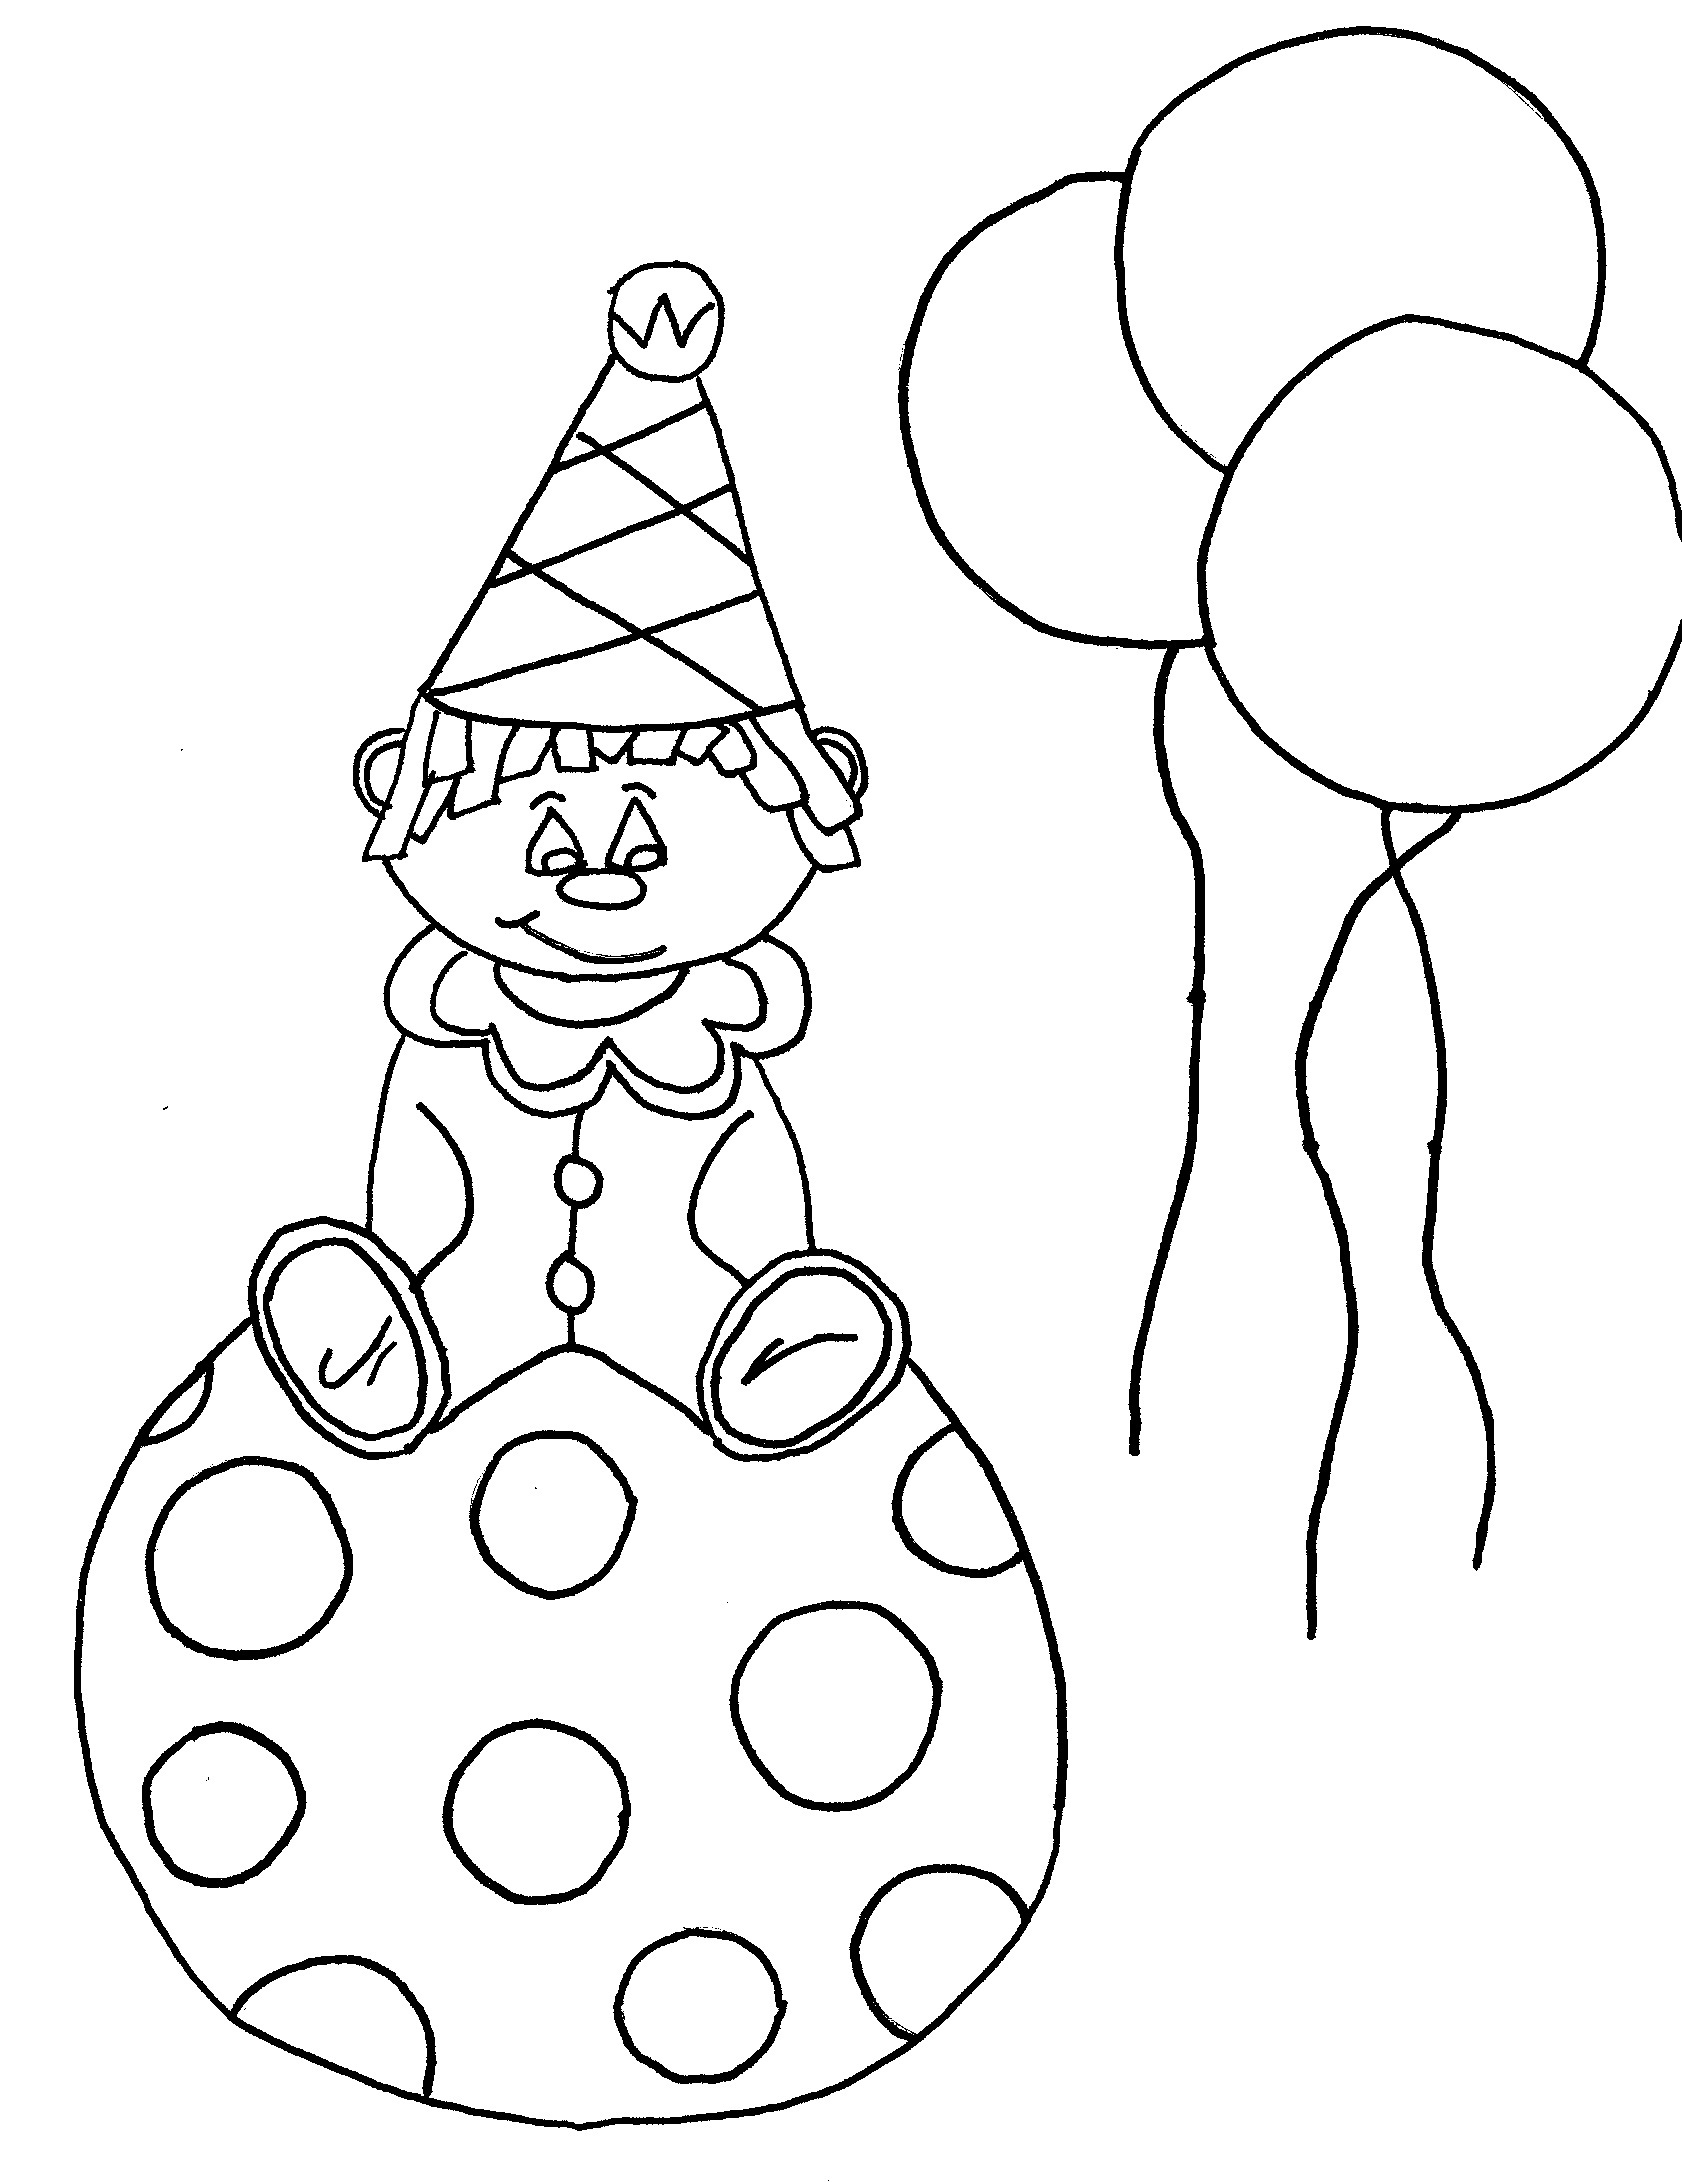 1682x2182 Coloring Pages Clown Hats The Ideas Of Coloring Page To Print